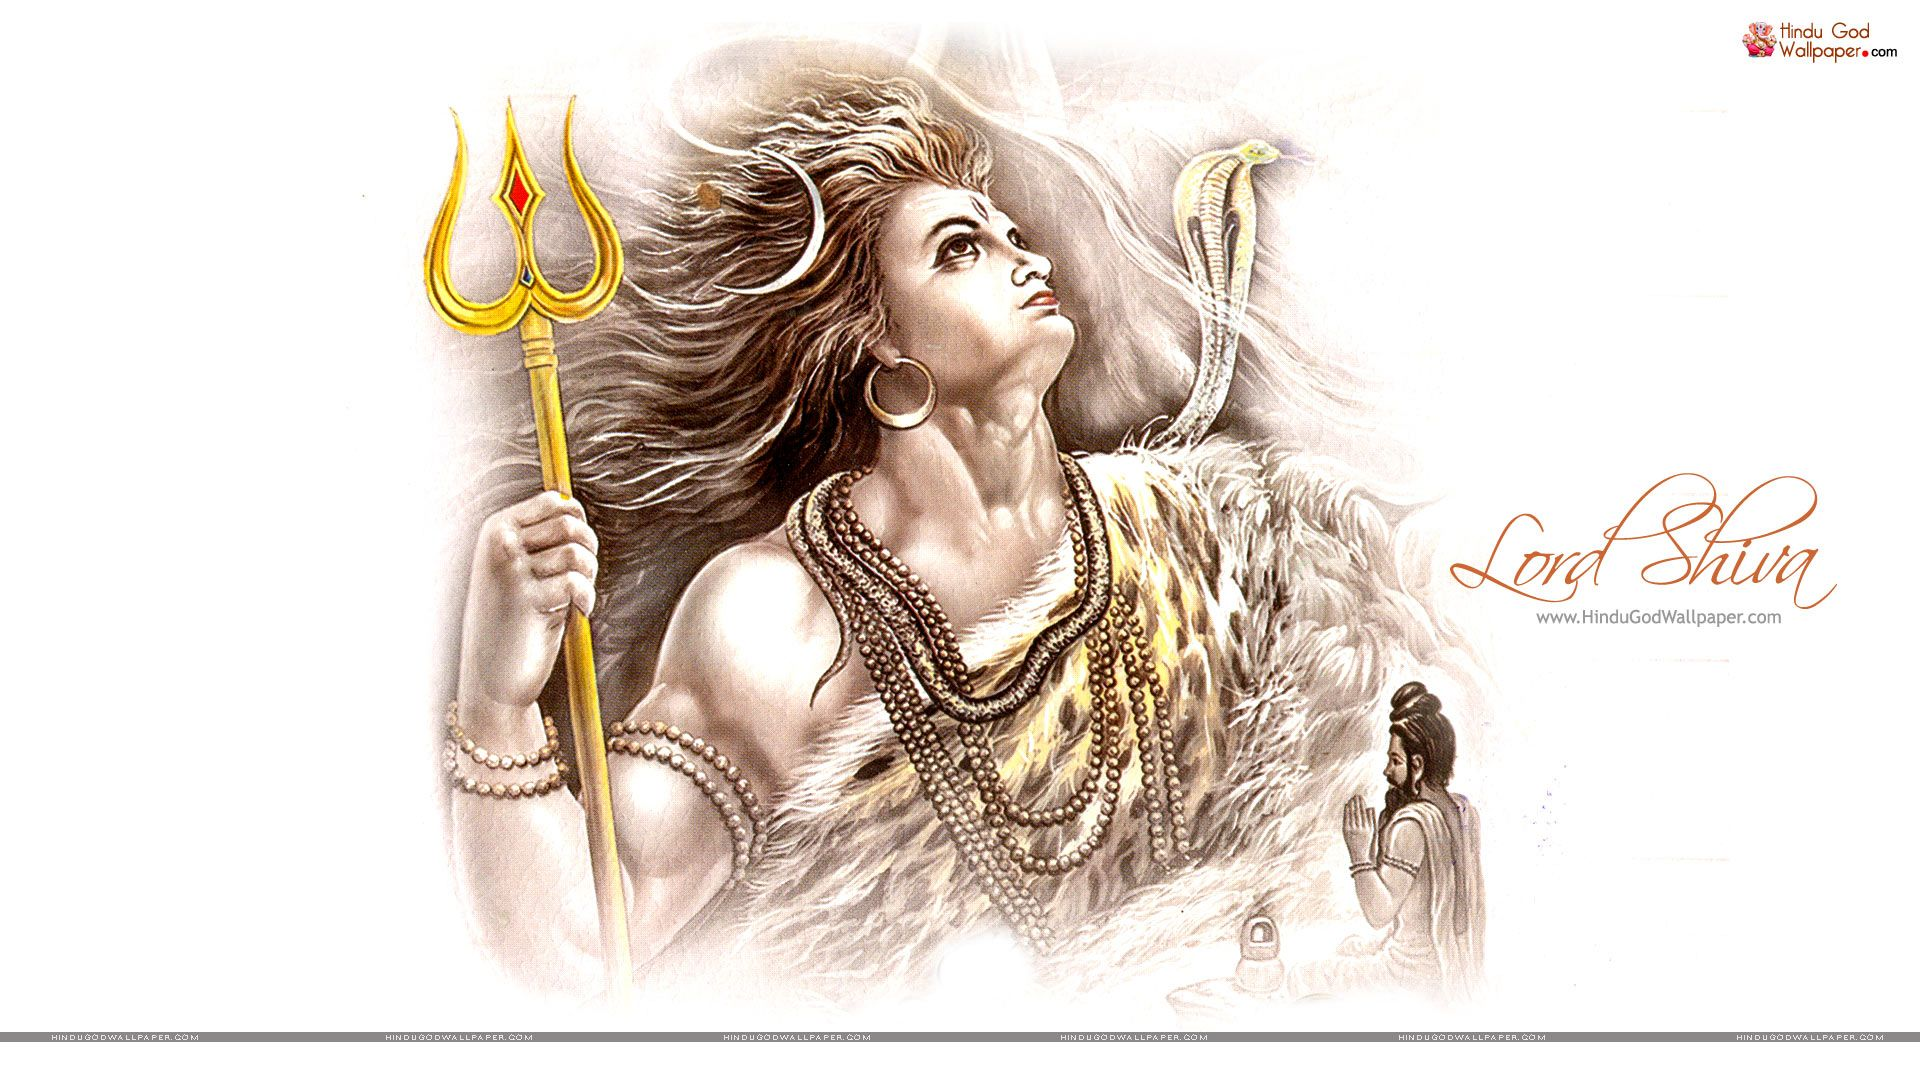 Lord Shiva Rudra Avatar Wallpapers Free Download | Gods in